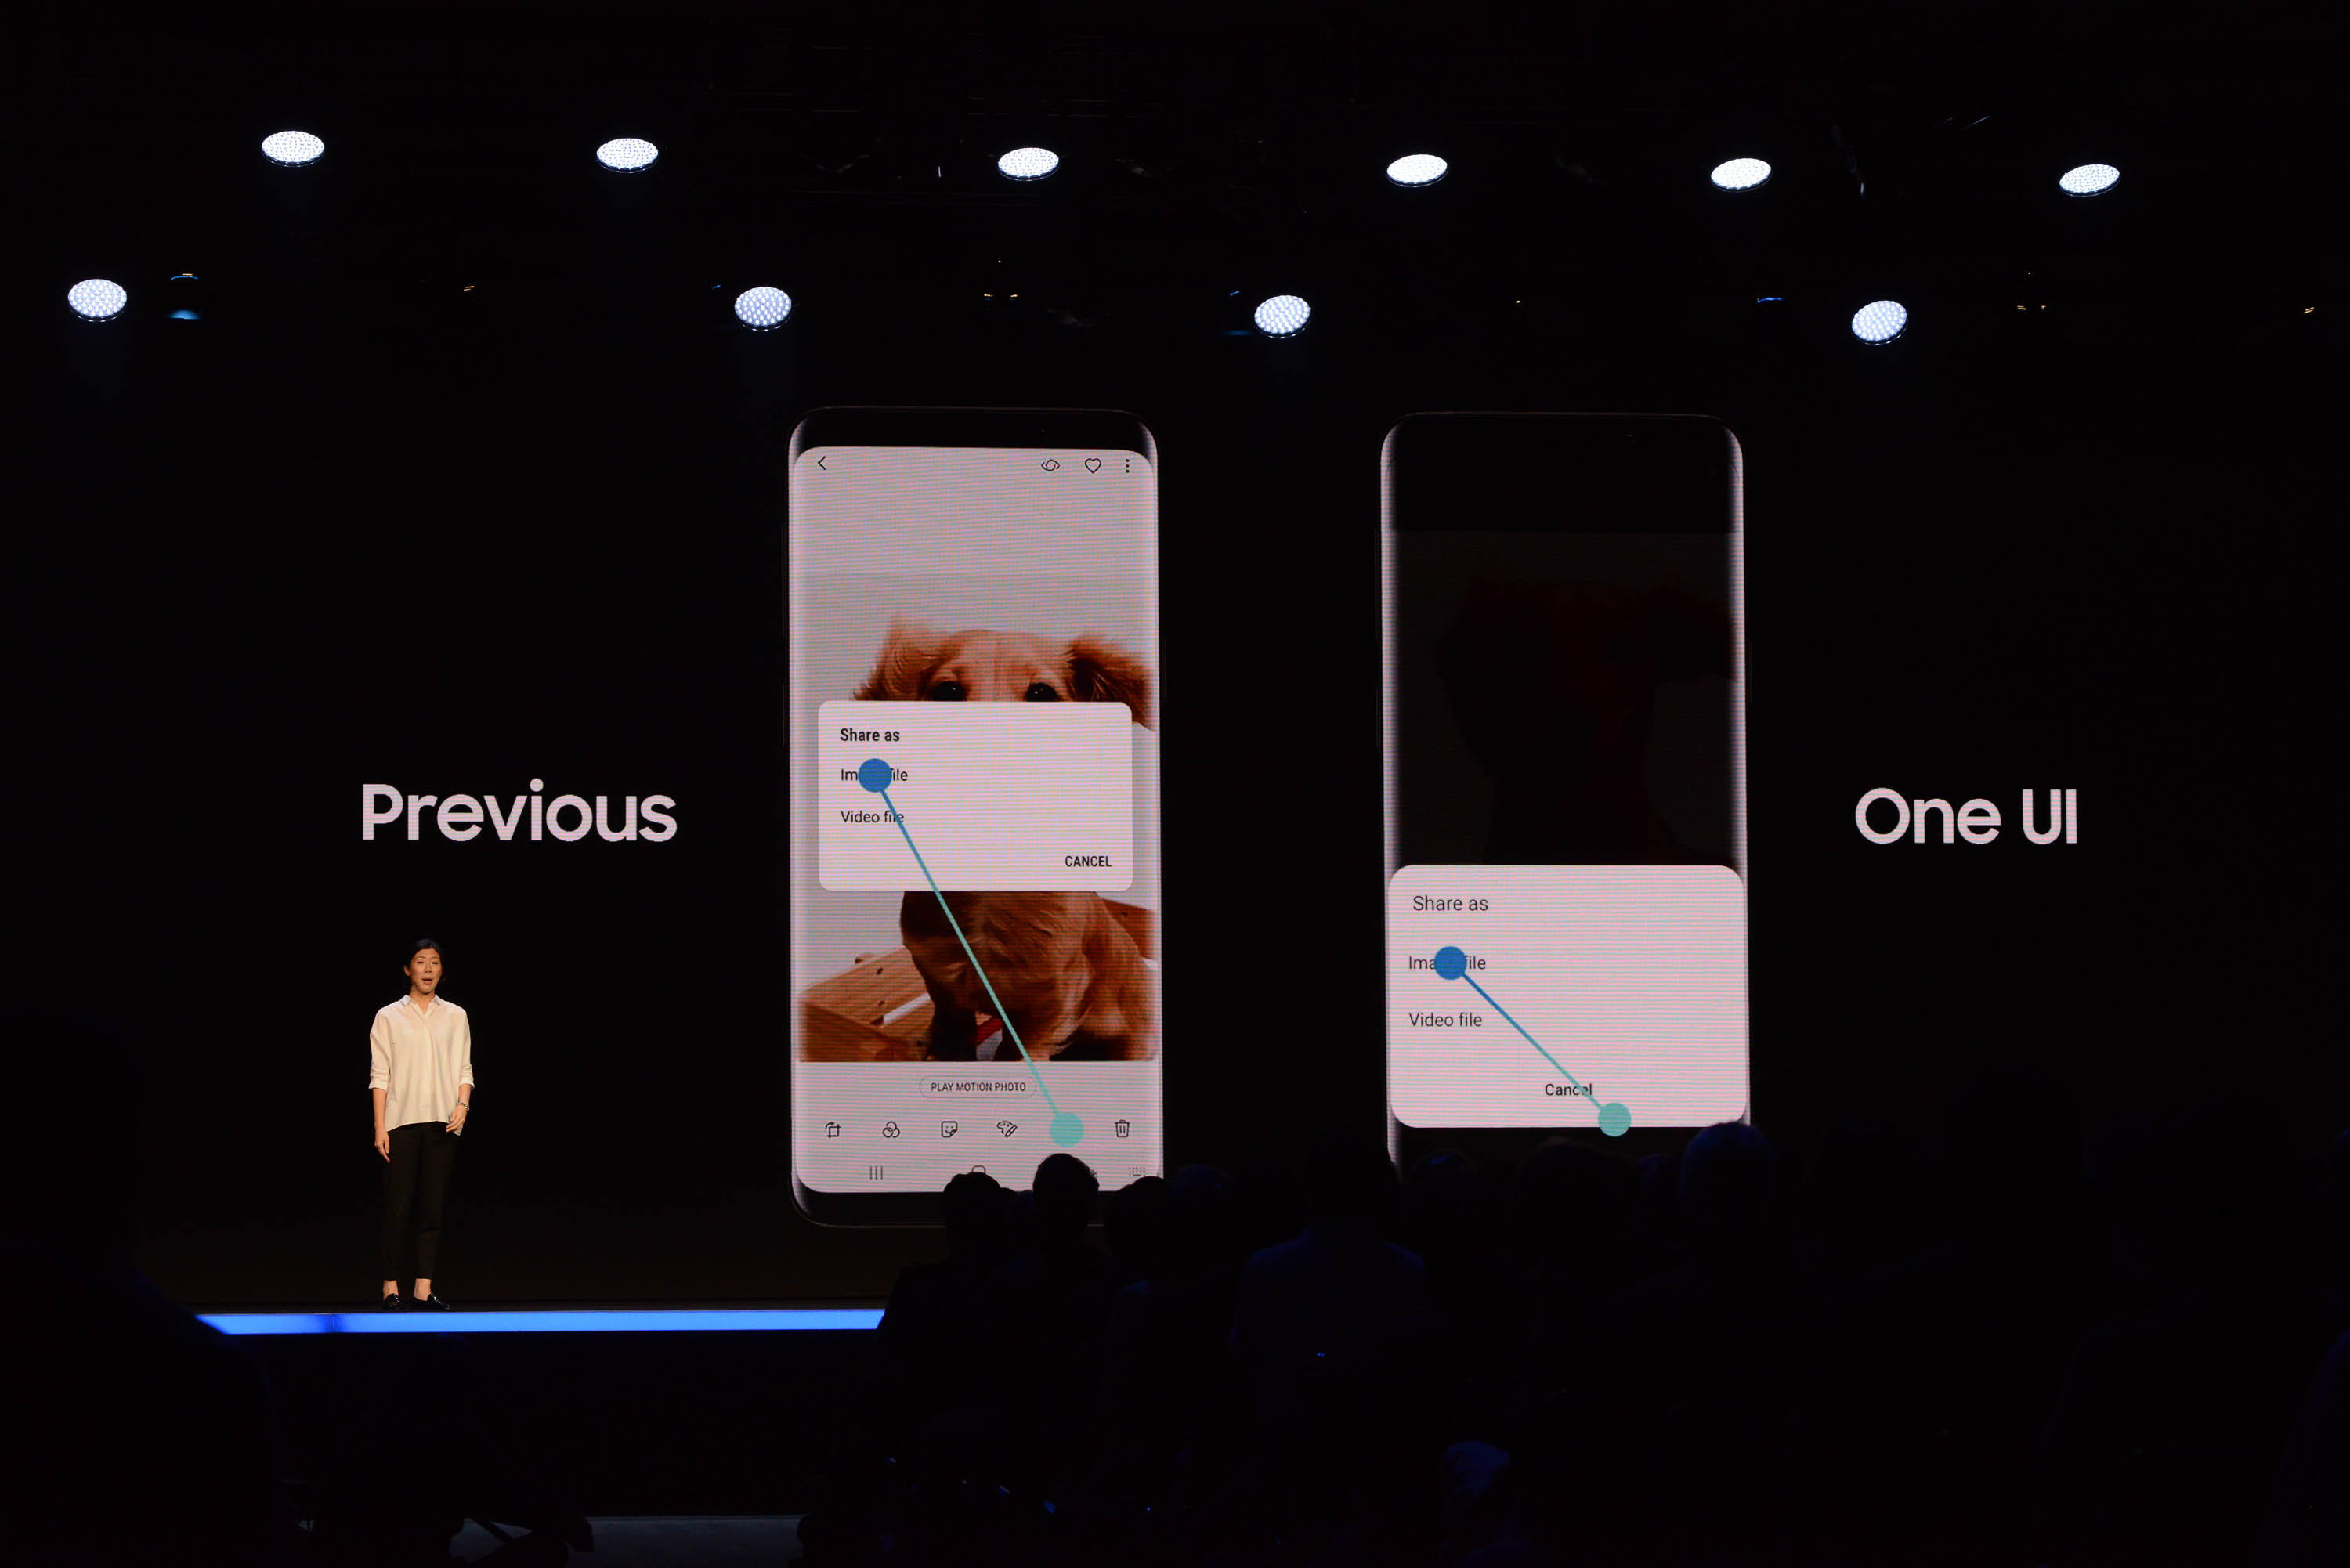 Samsung redesigns its smartphone user interface with One UI - CNET